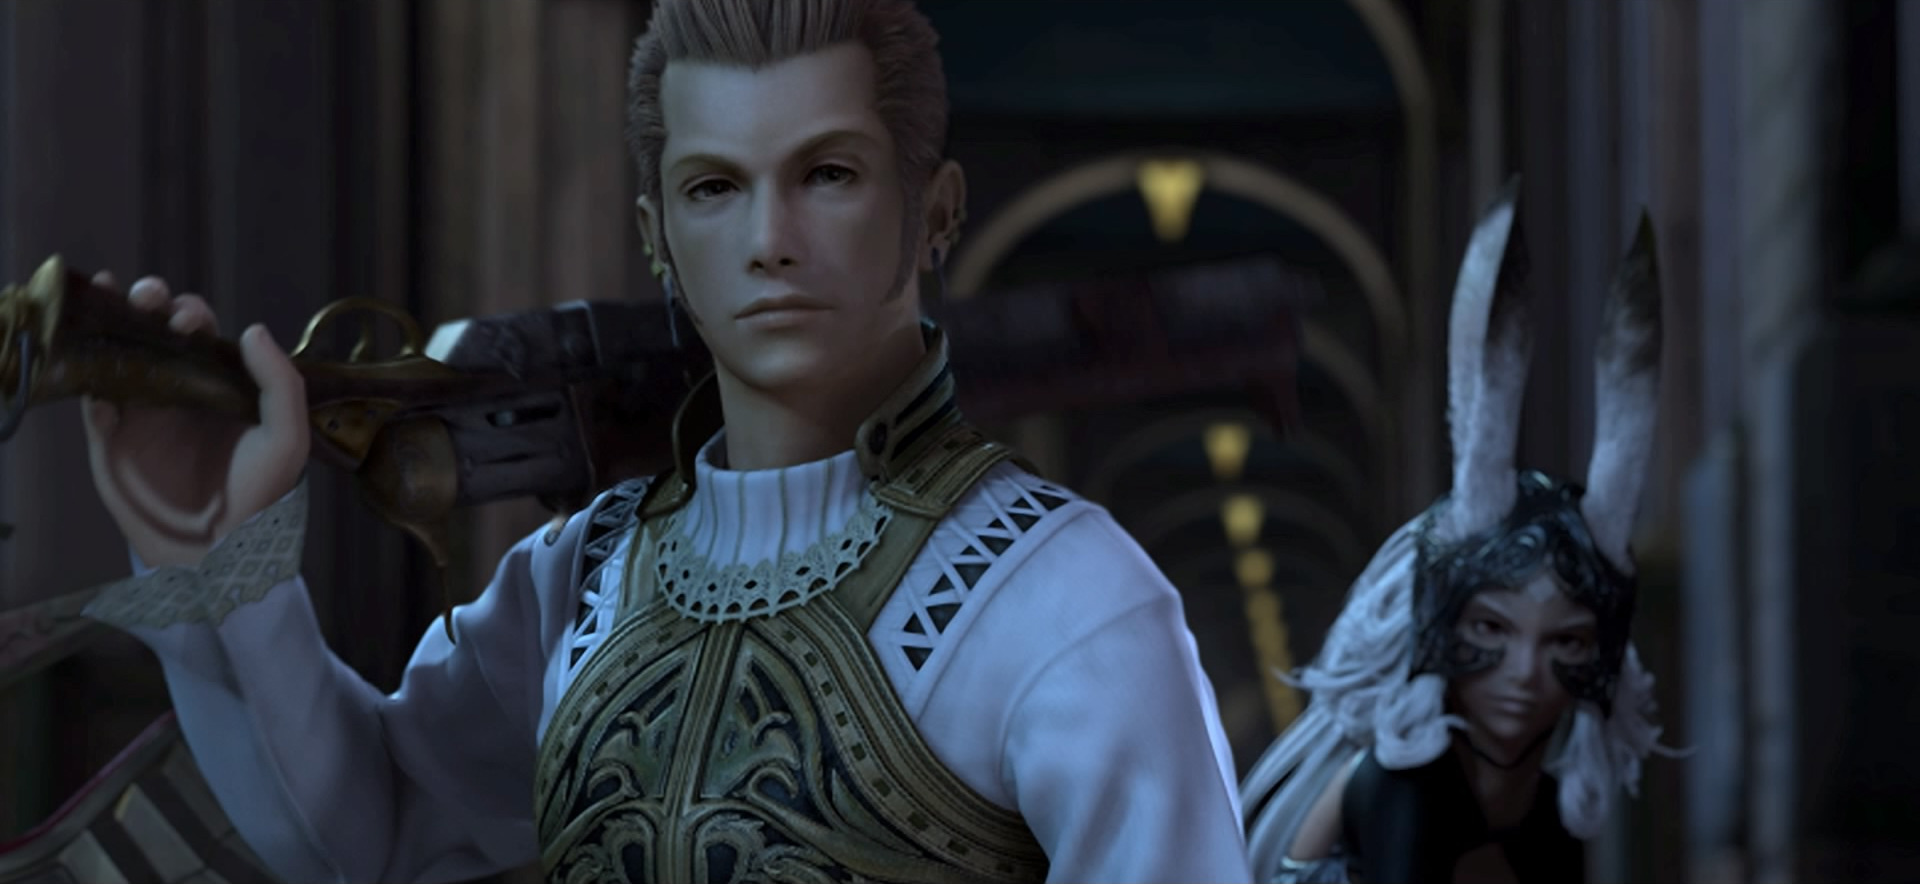 http://img1.wikia.nocookie.net/__cb20110814063629/finalfantasy/images/a/aa/Balthier_Fran.jpg